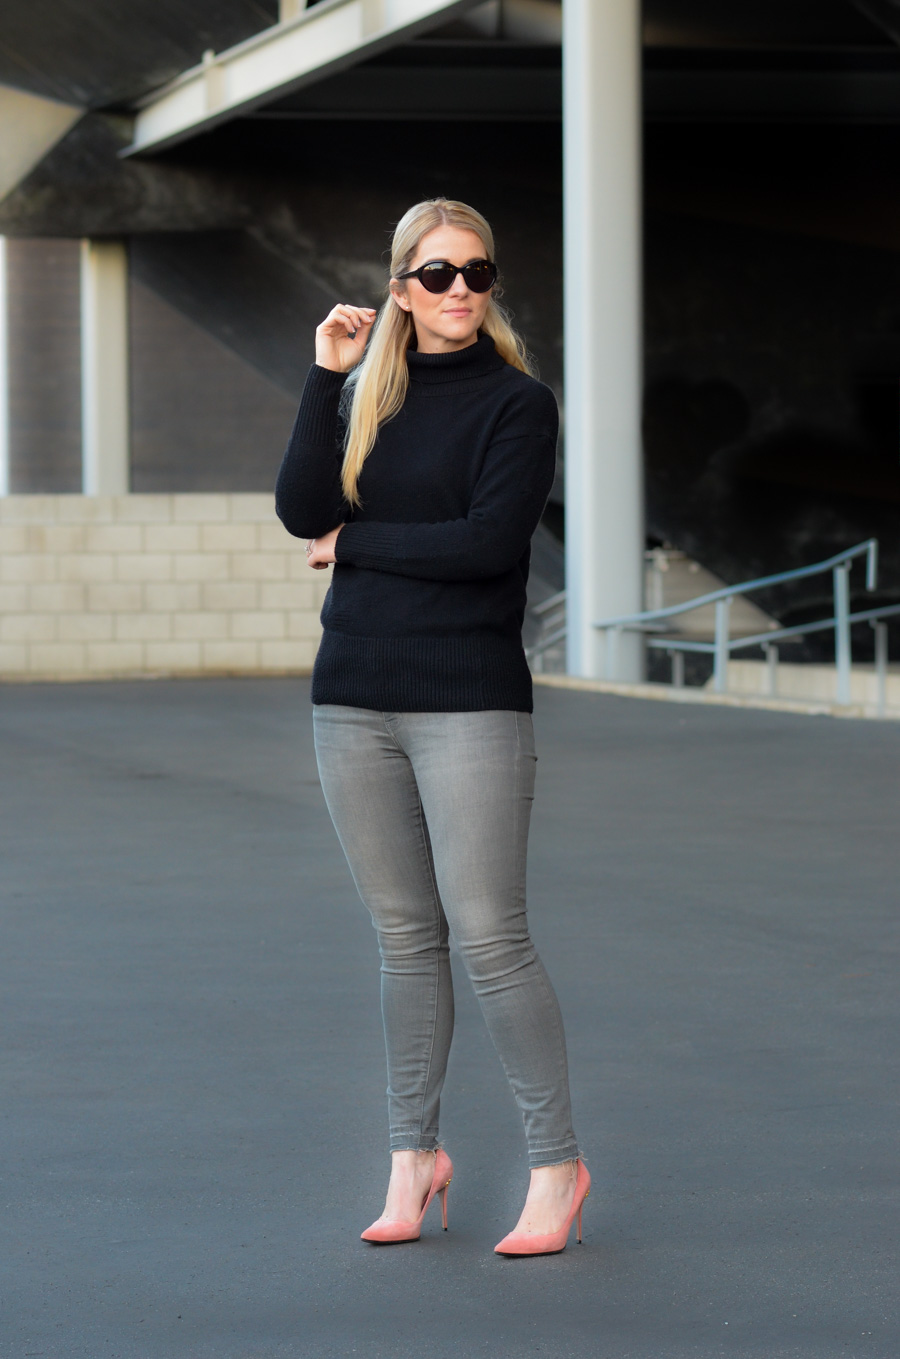 Casual Valentine's Day Outfit - Aritzia Turtleneck Outfit